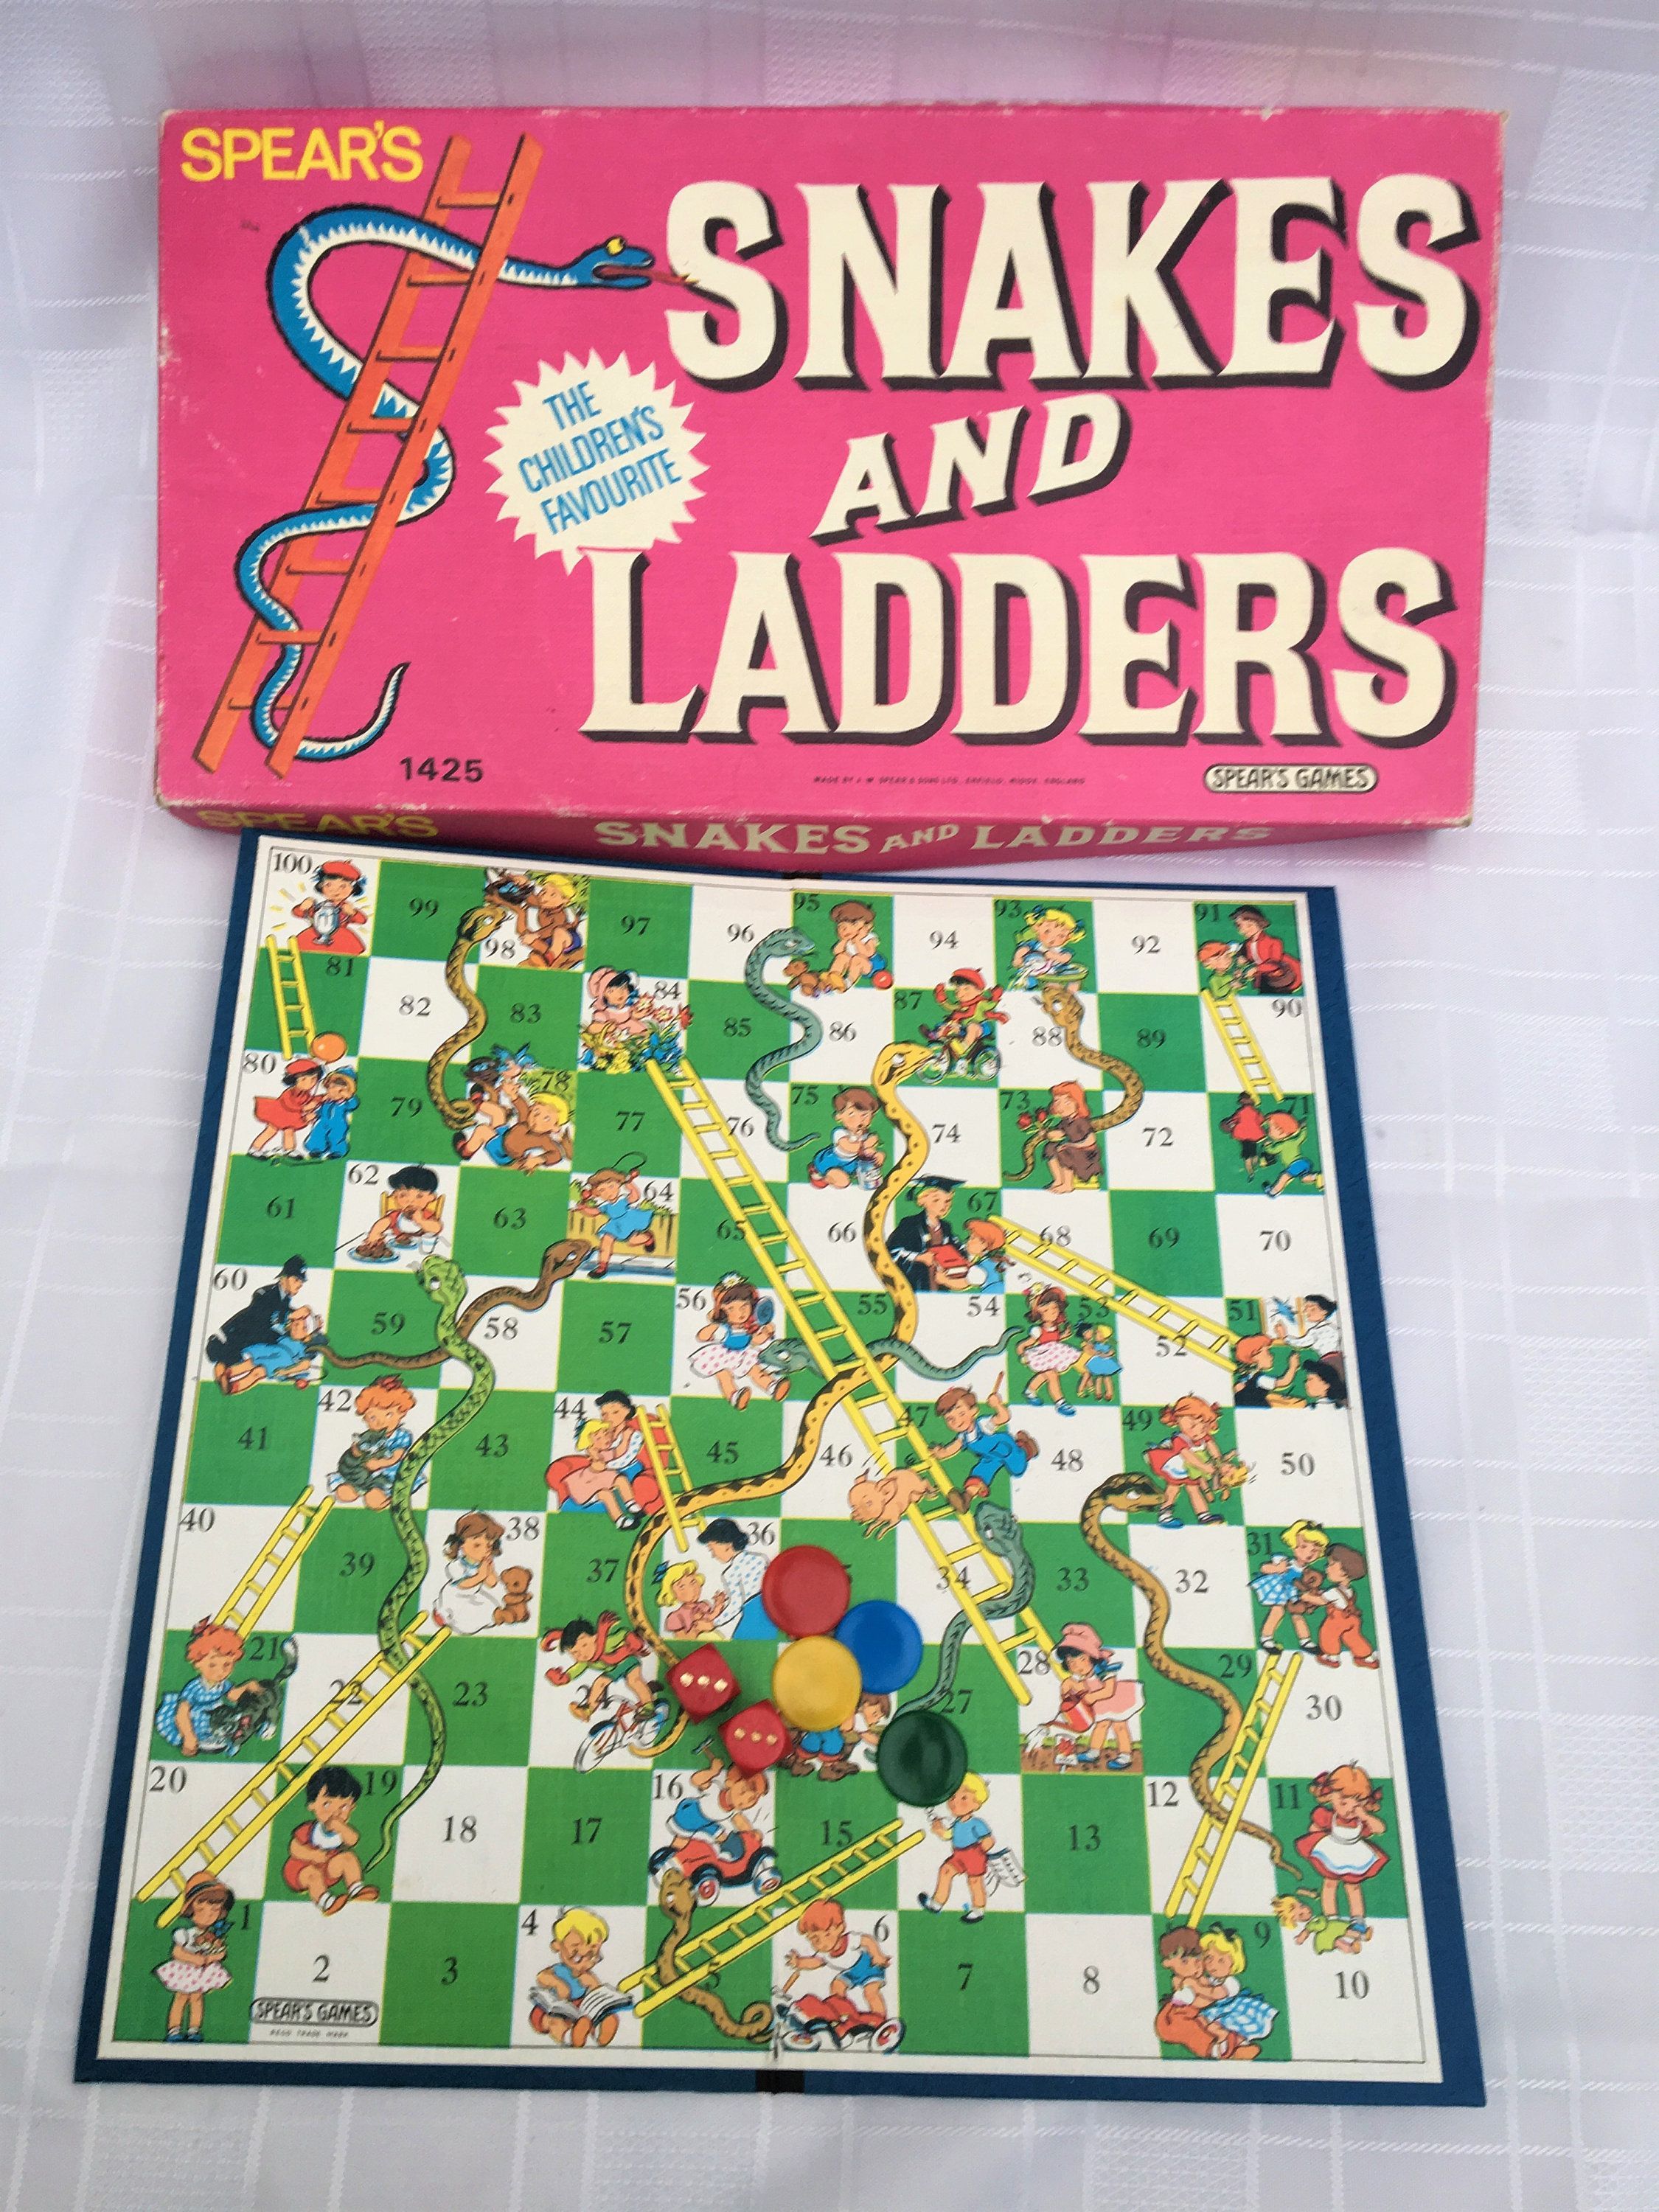 Vintage Snakes and Ladders by Spear's box and Board Games